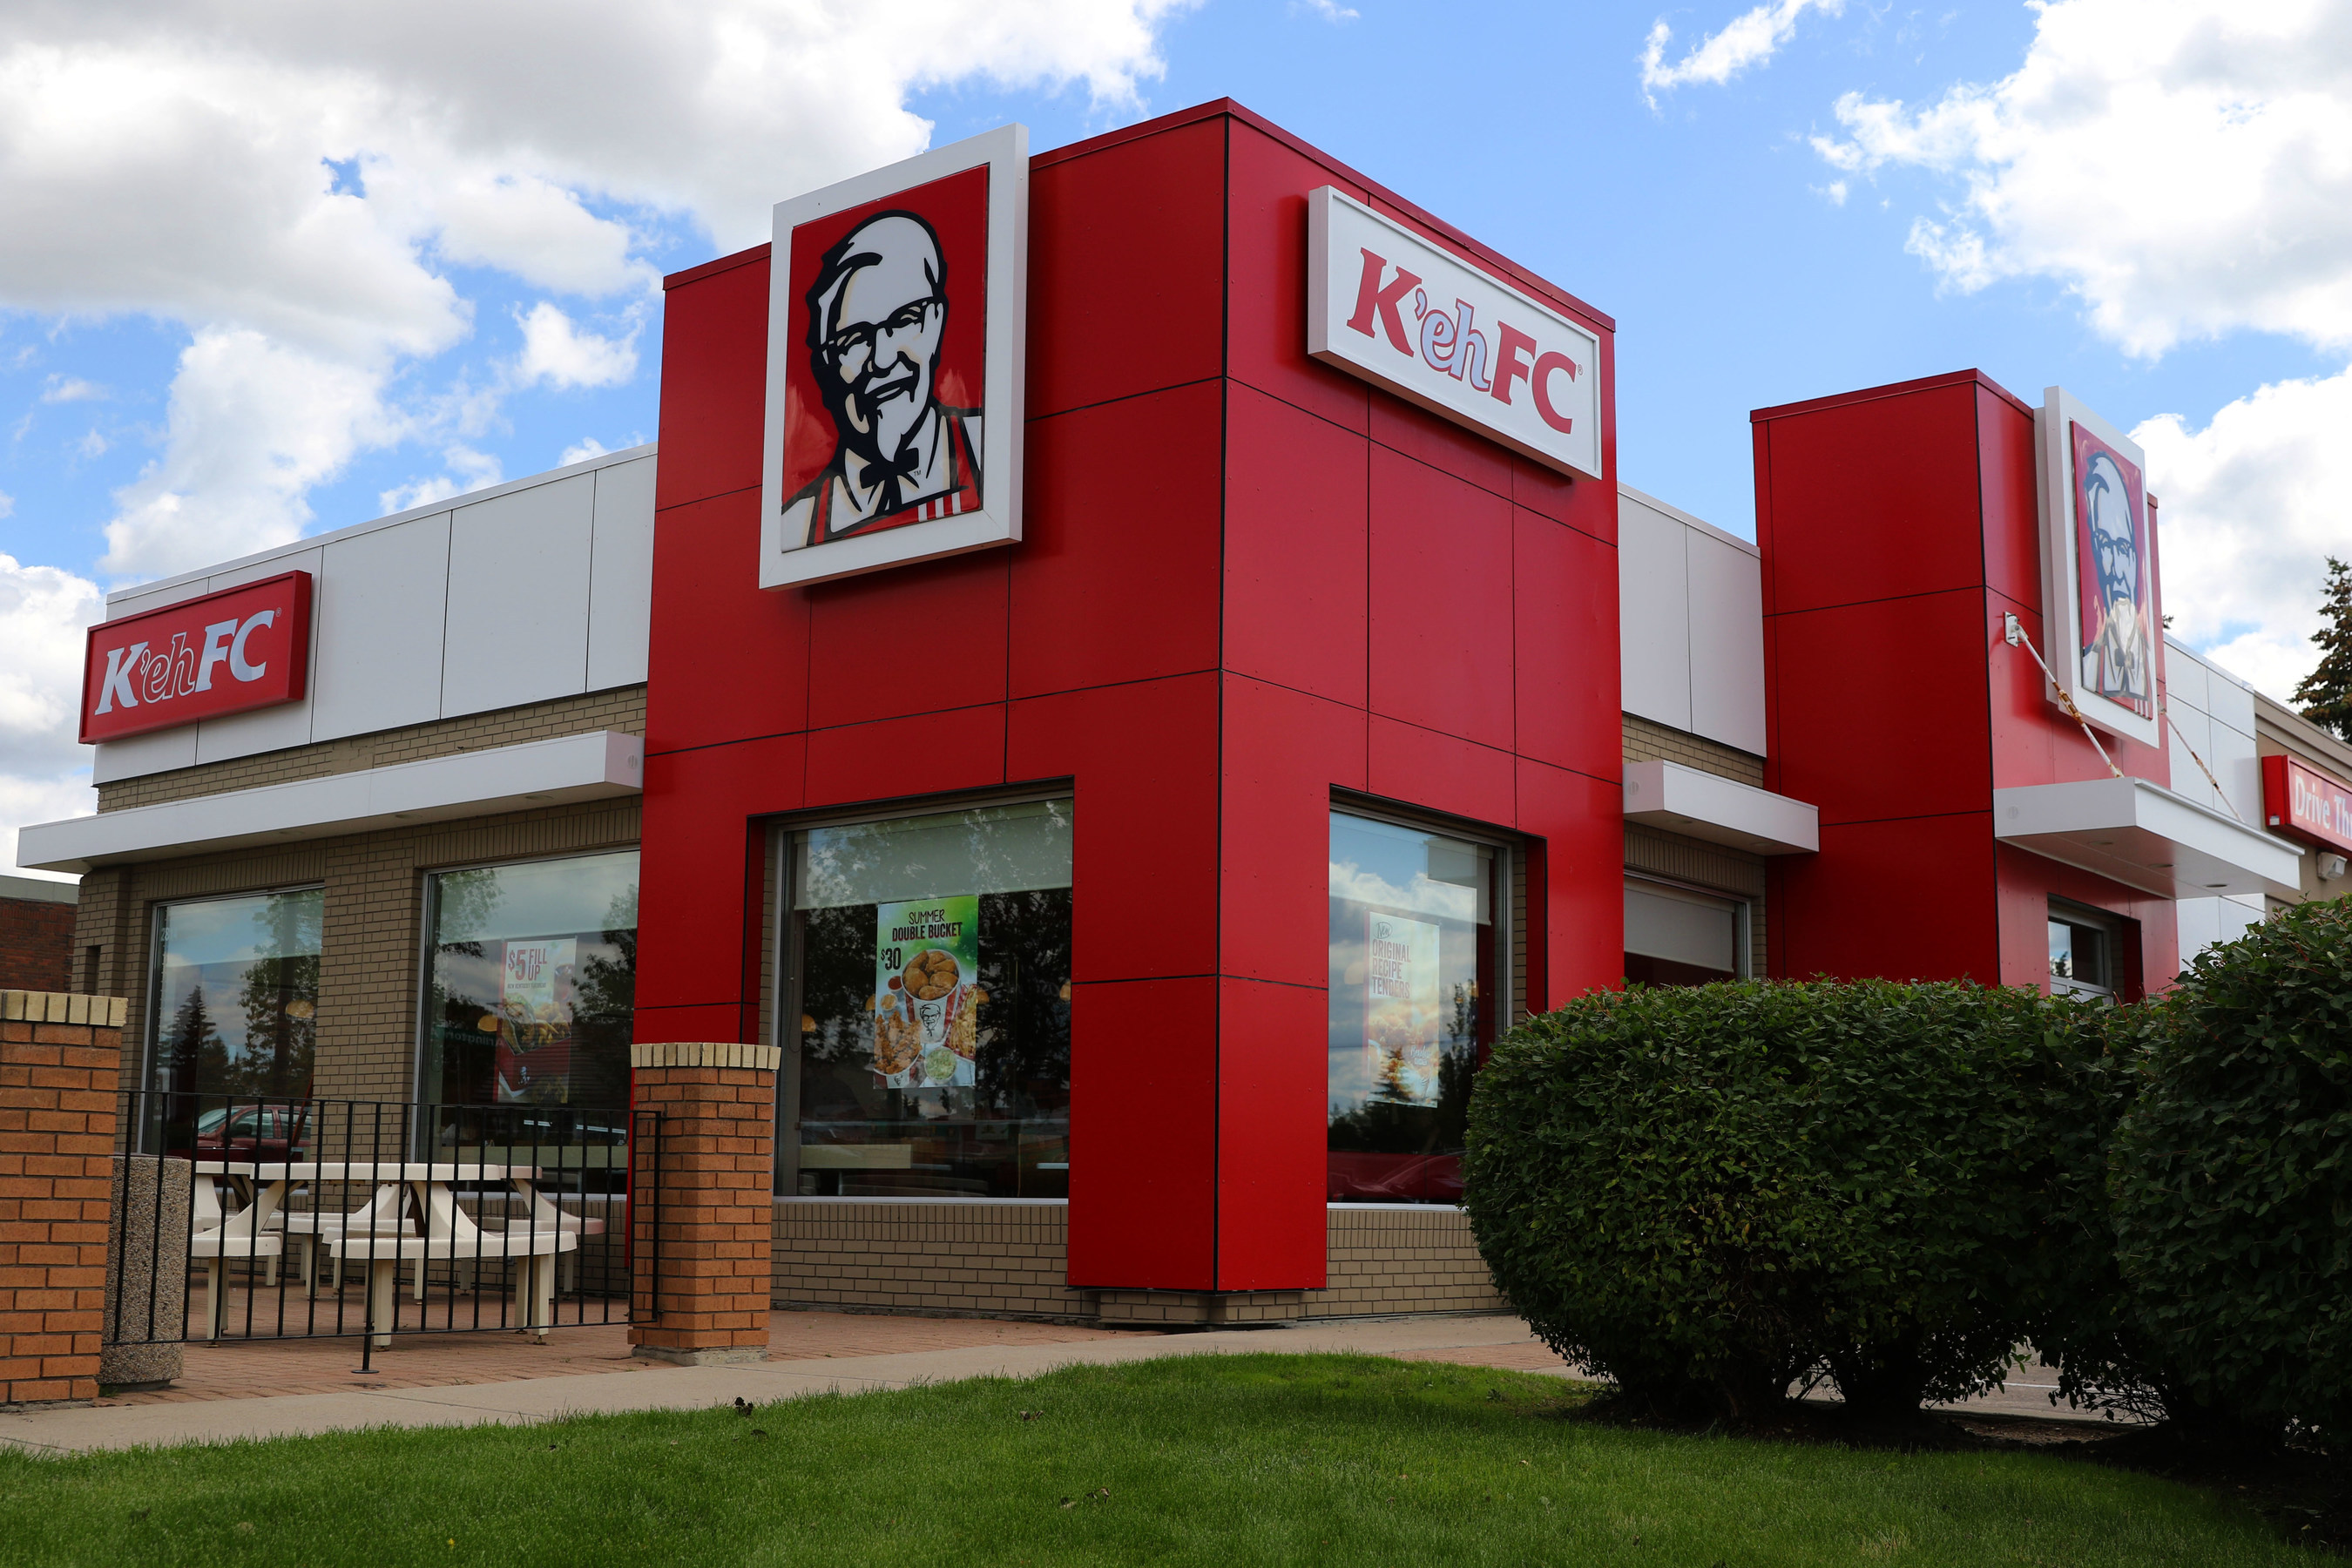 KFC Canada Coupons The world famous Kentucky Friend Chicken has become a staple in Canada for making chicken that's finger-licking good for prices everyone can afford. You can always save more, so visit this page to take advantage of their weekly deals and printable coupons.